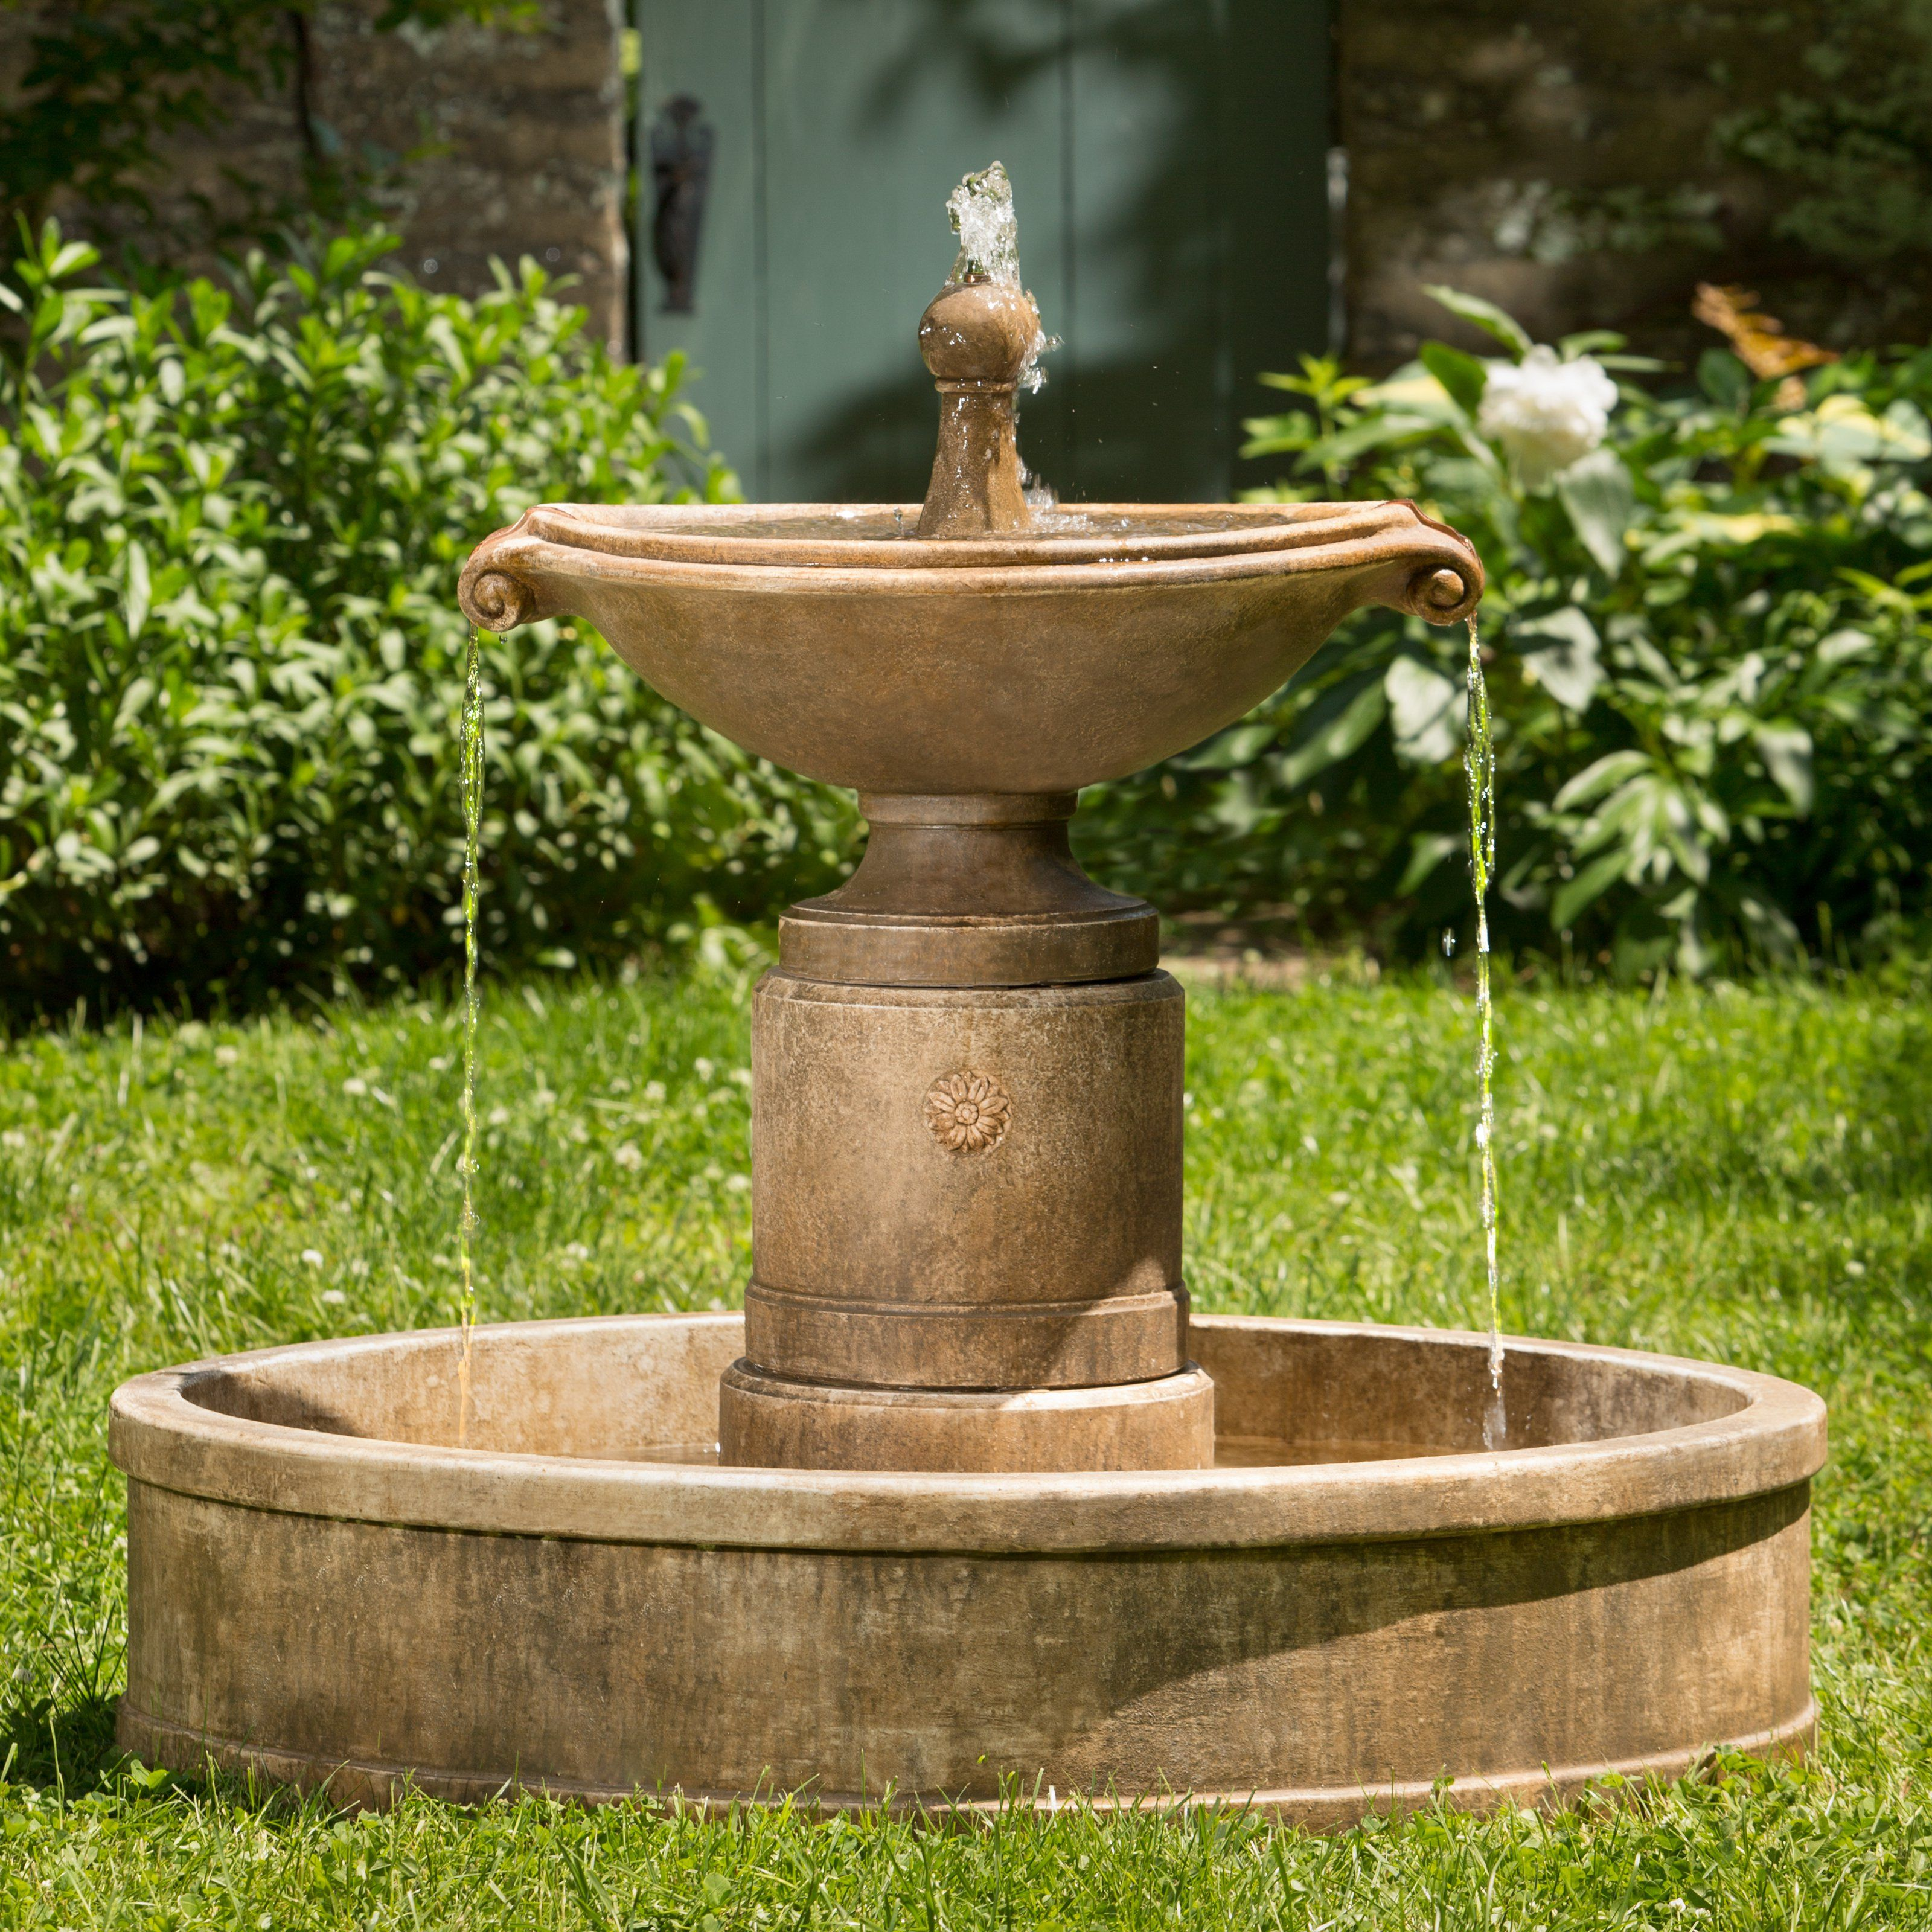 Campania International Borghese In Basin Outdoor Fountain   $979.99  @hayneedle